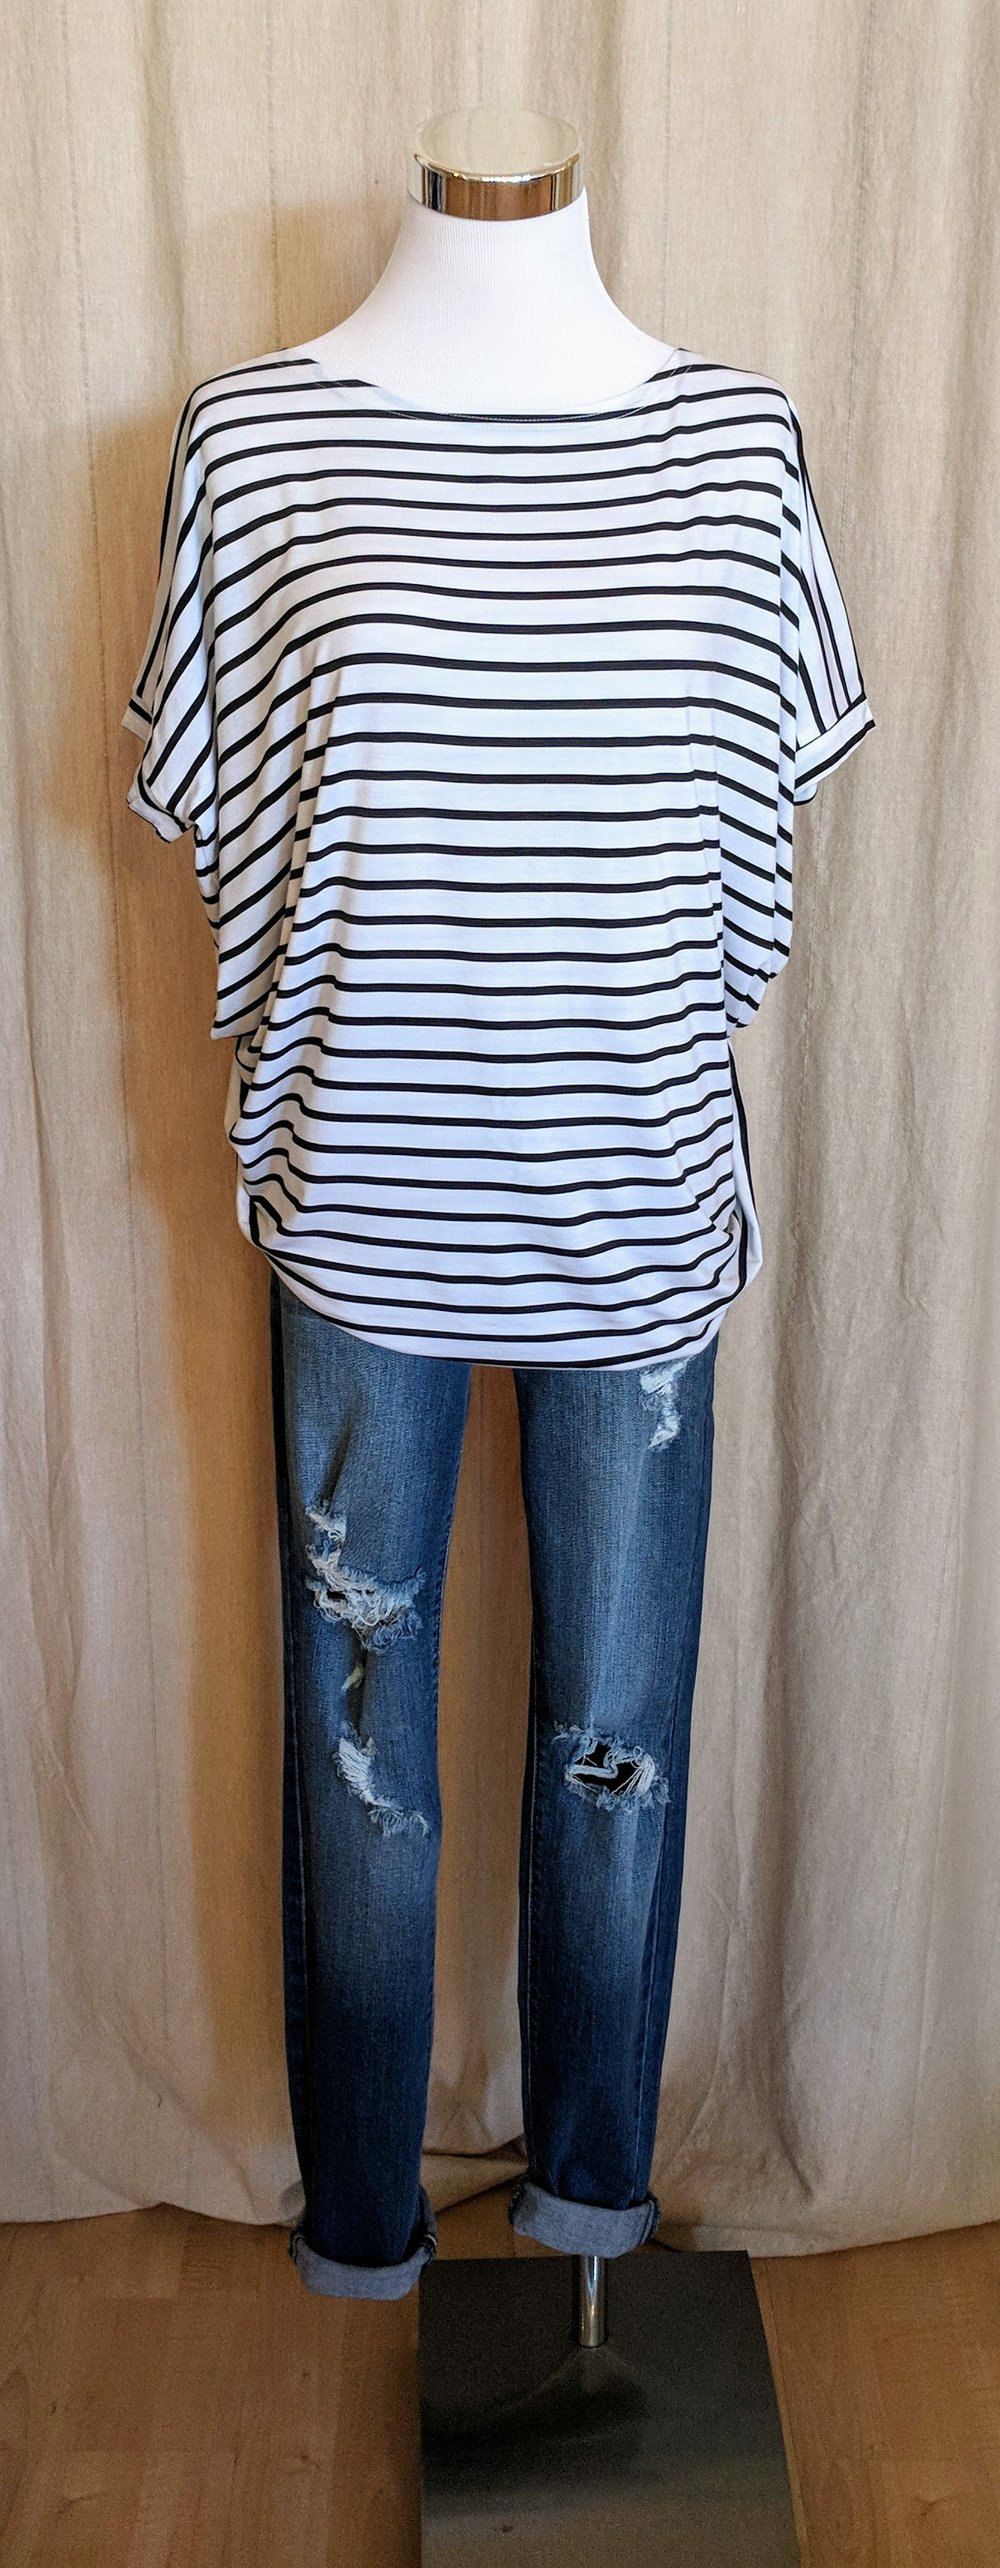 White and Black striped oversize top $28